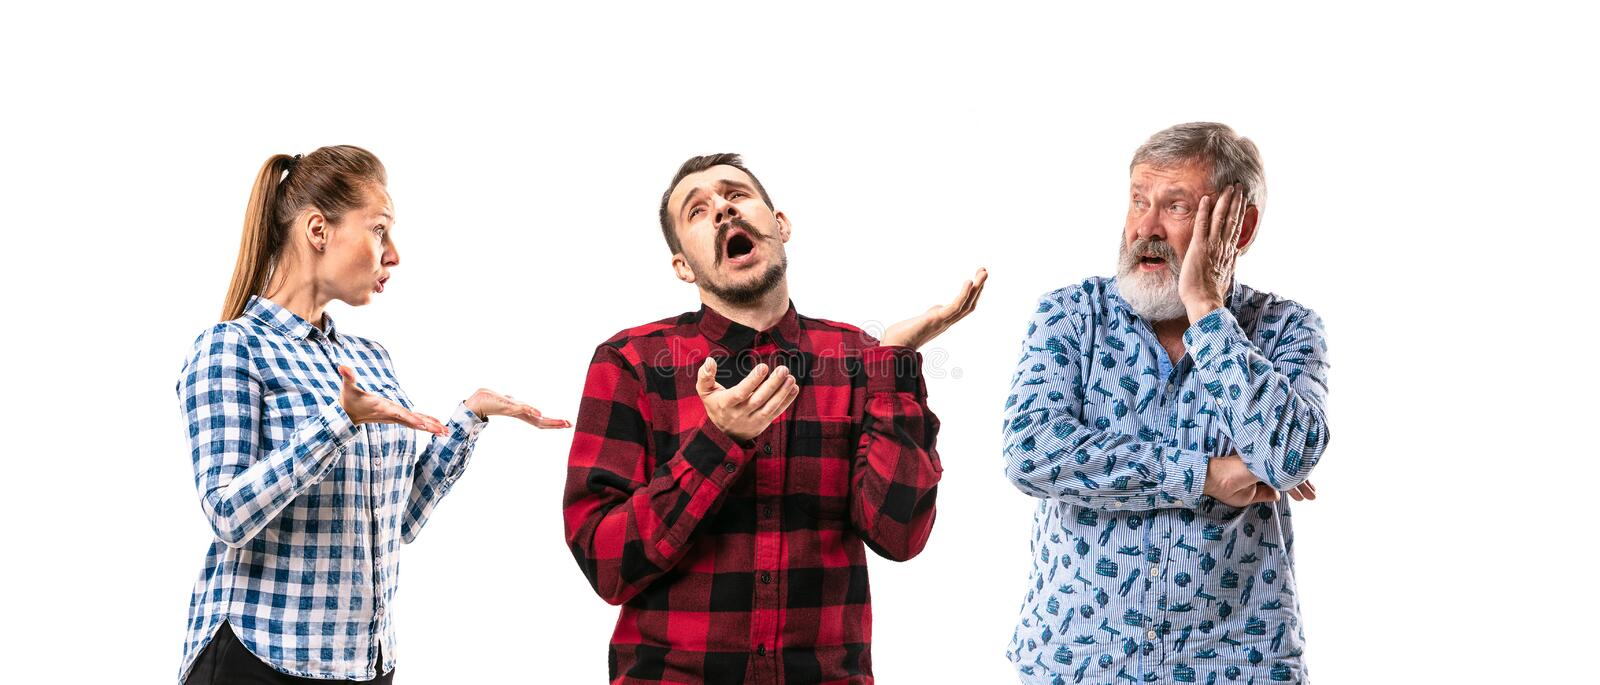 Family members arguing with one another on white studio background. stock image